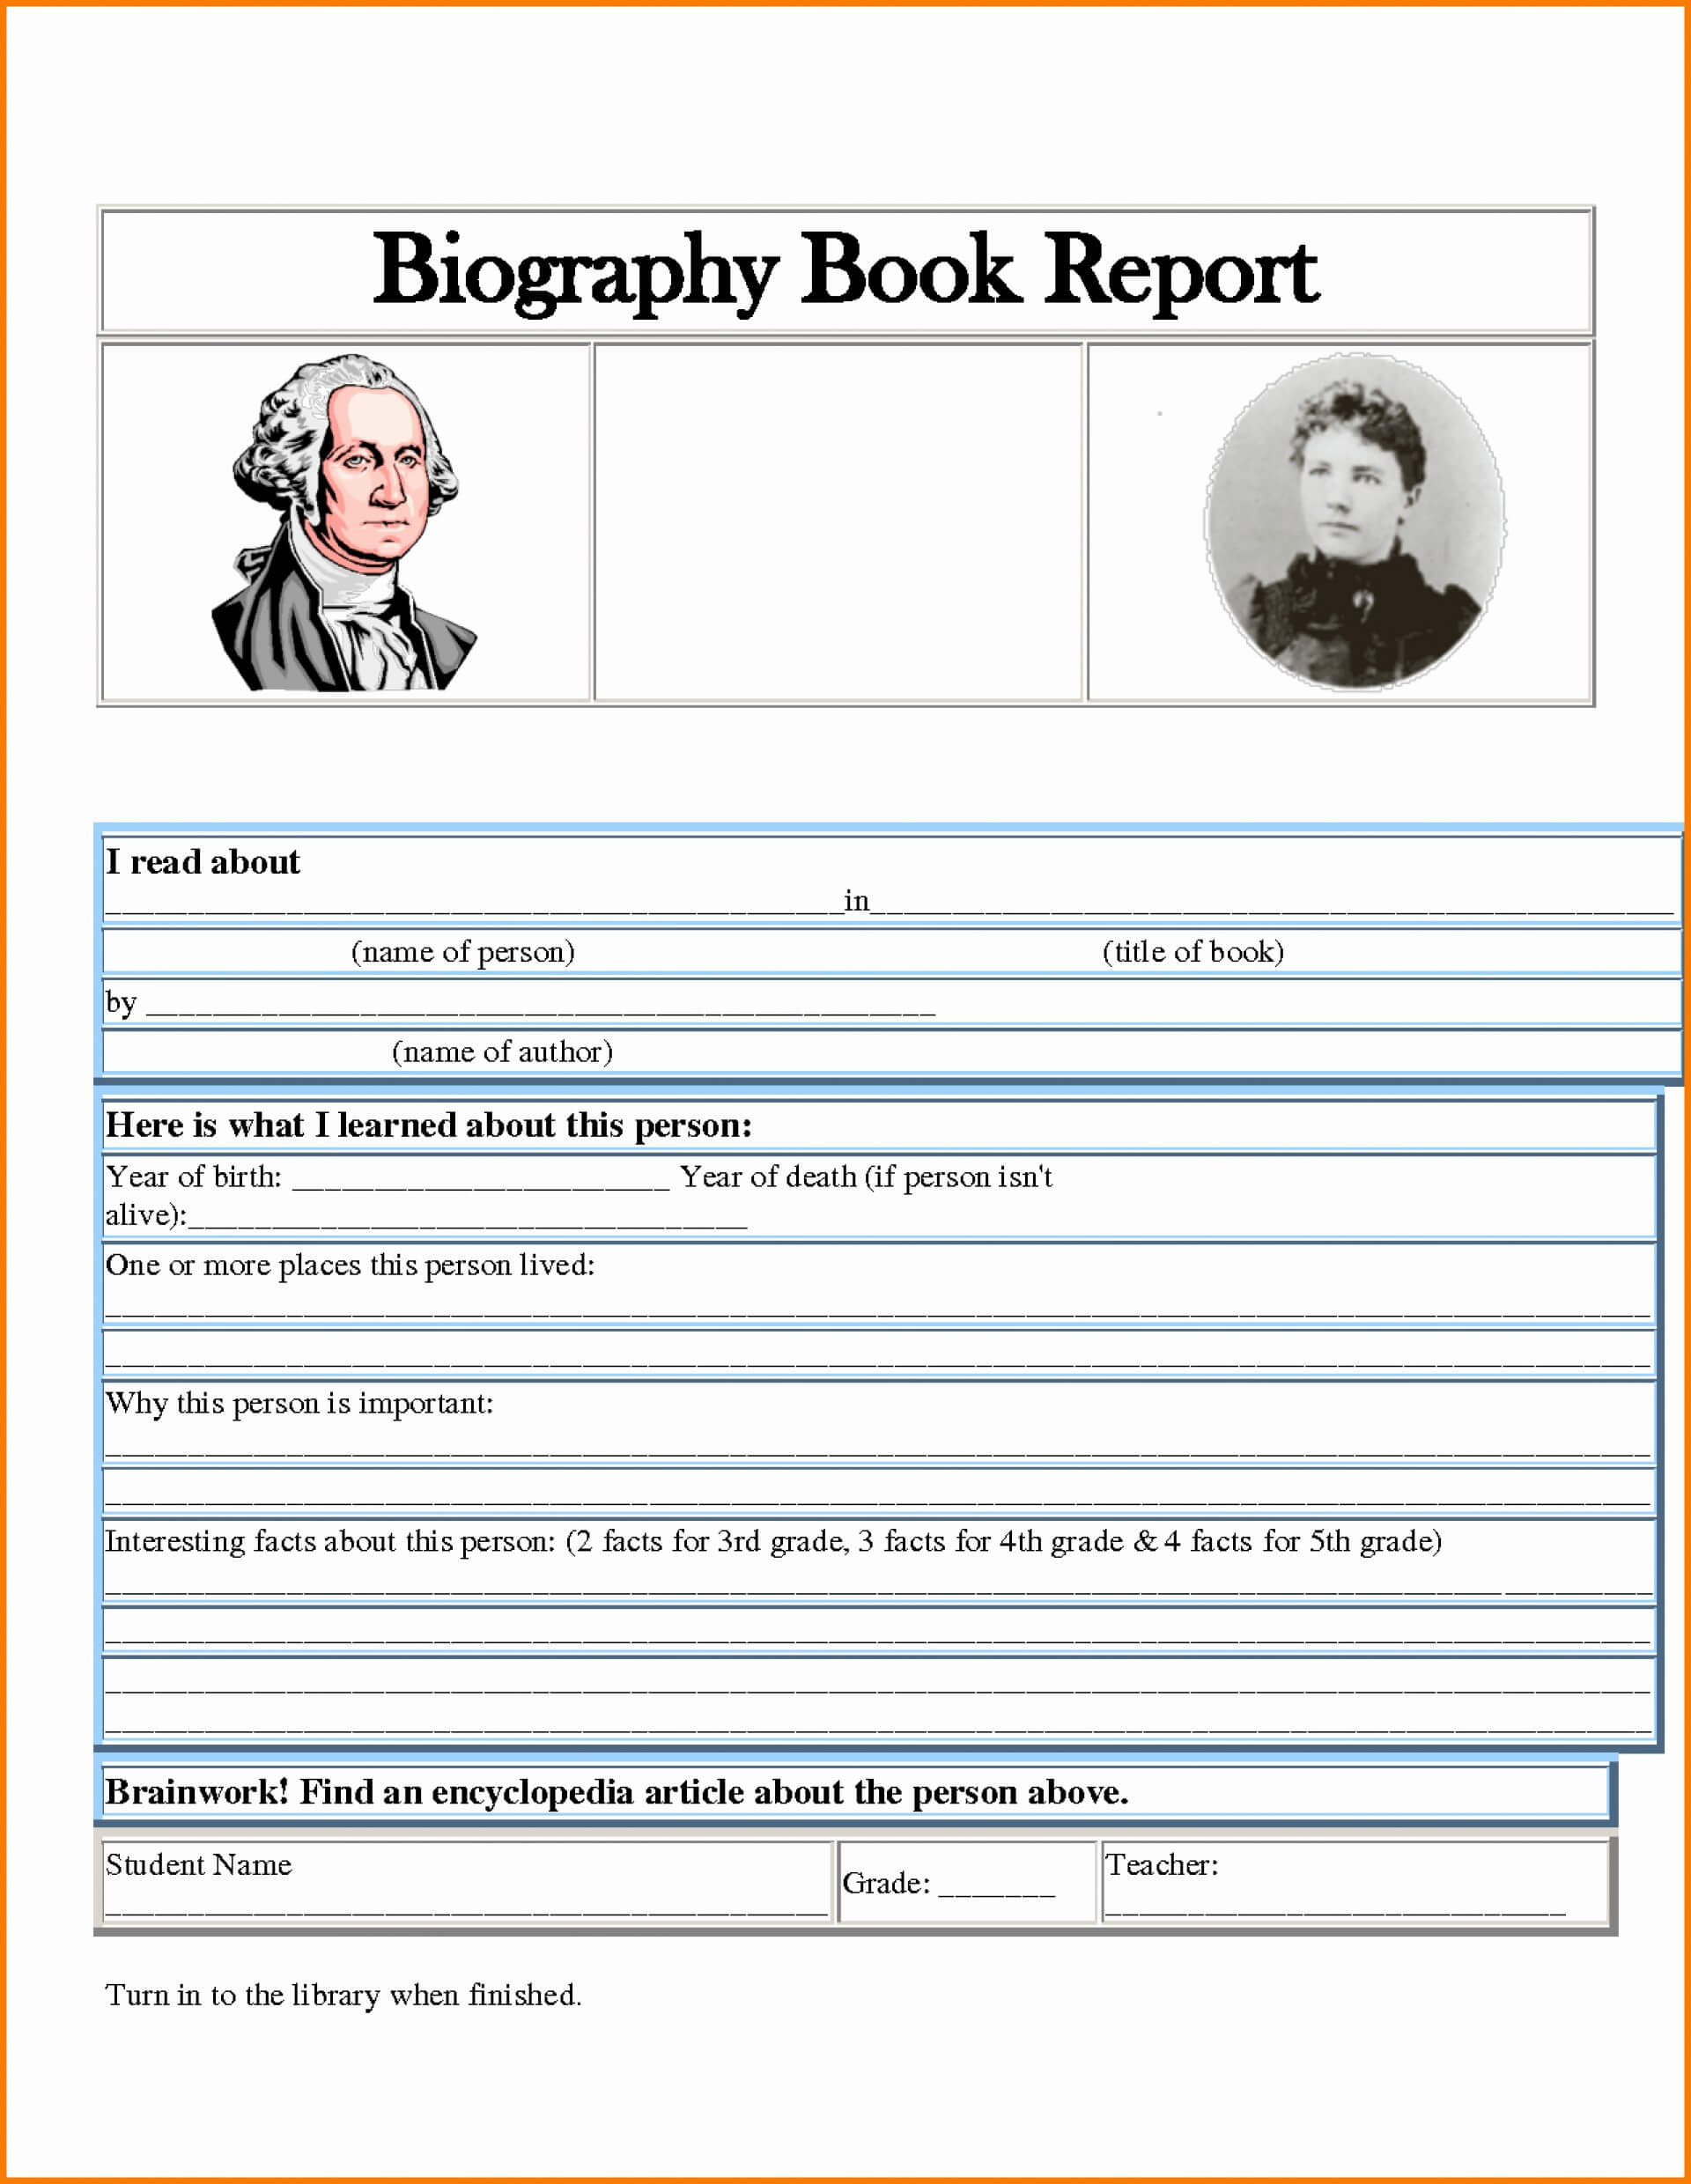 002 Biography Book Report Template Ideas Formidable 3Rd intended for One Page Book Report Template